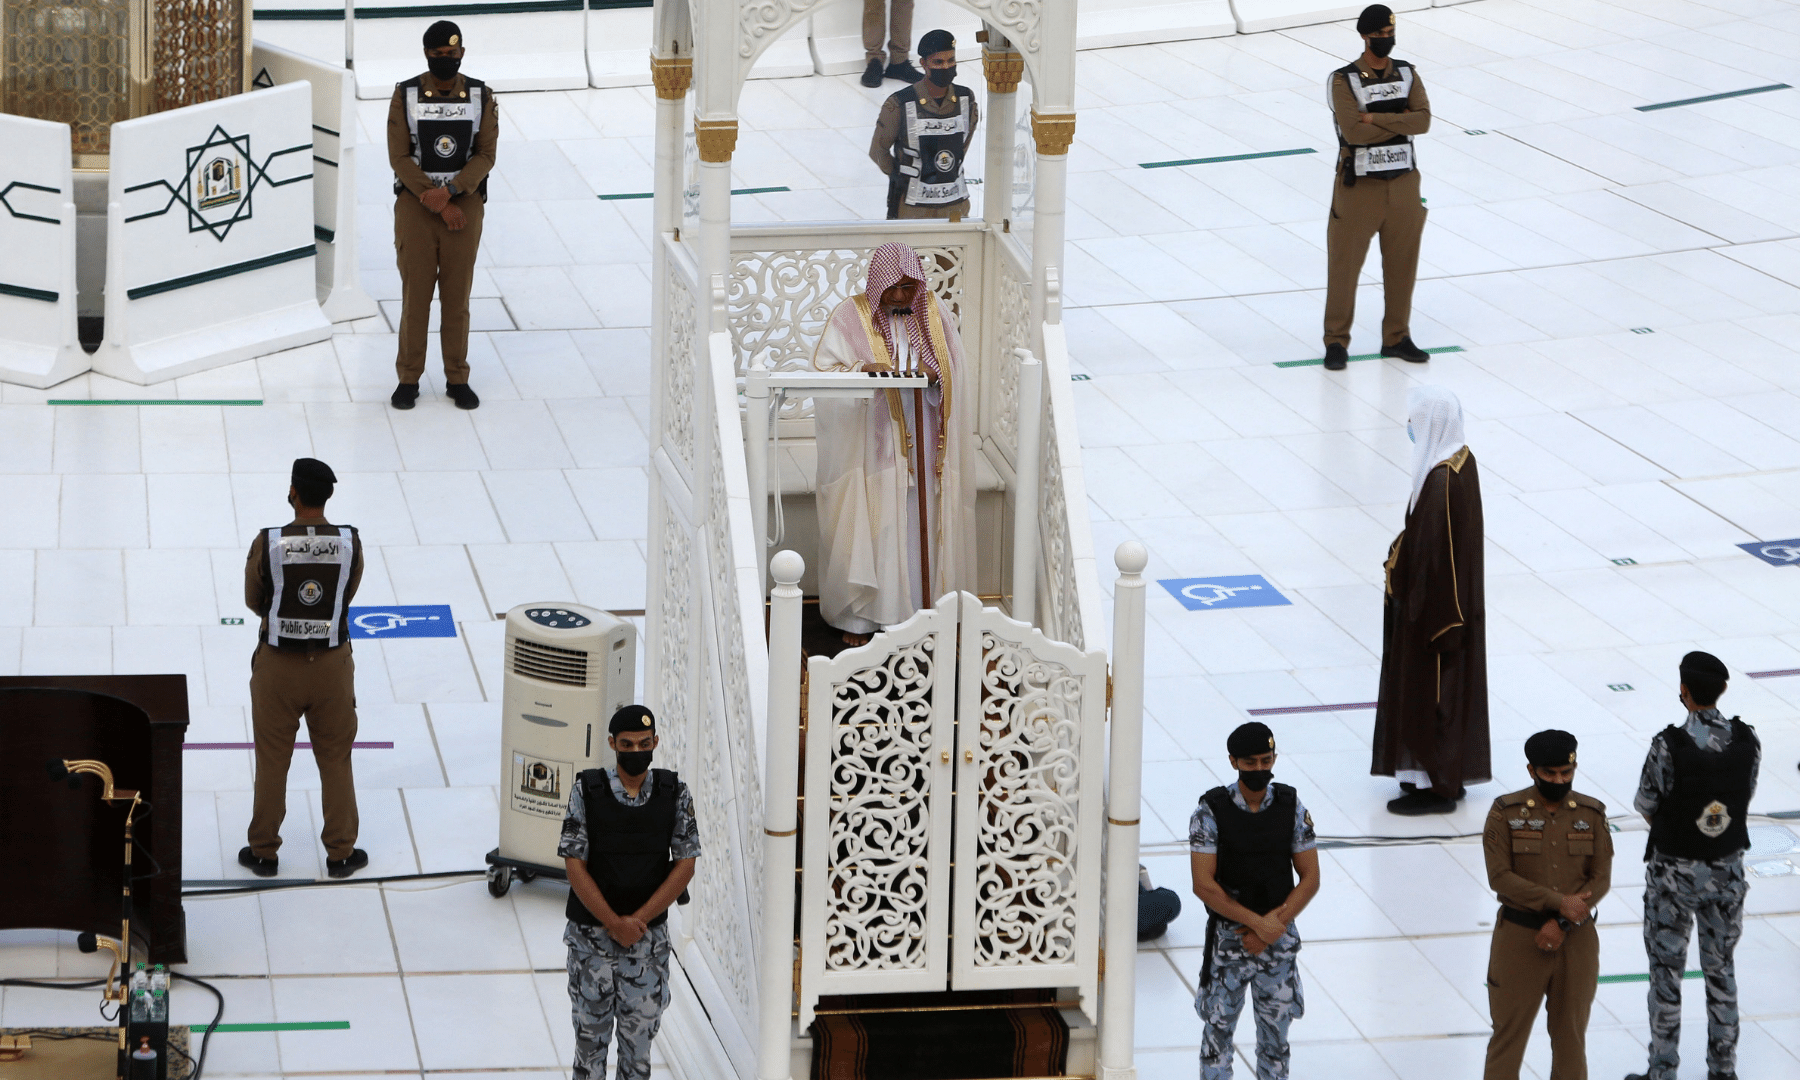 Security forces stand guard as Muslim worshippers perform the Eidul Fitr prayer at the Grand Mosque in Saudi Arabia's Makkah. — AFP